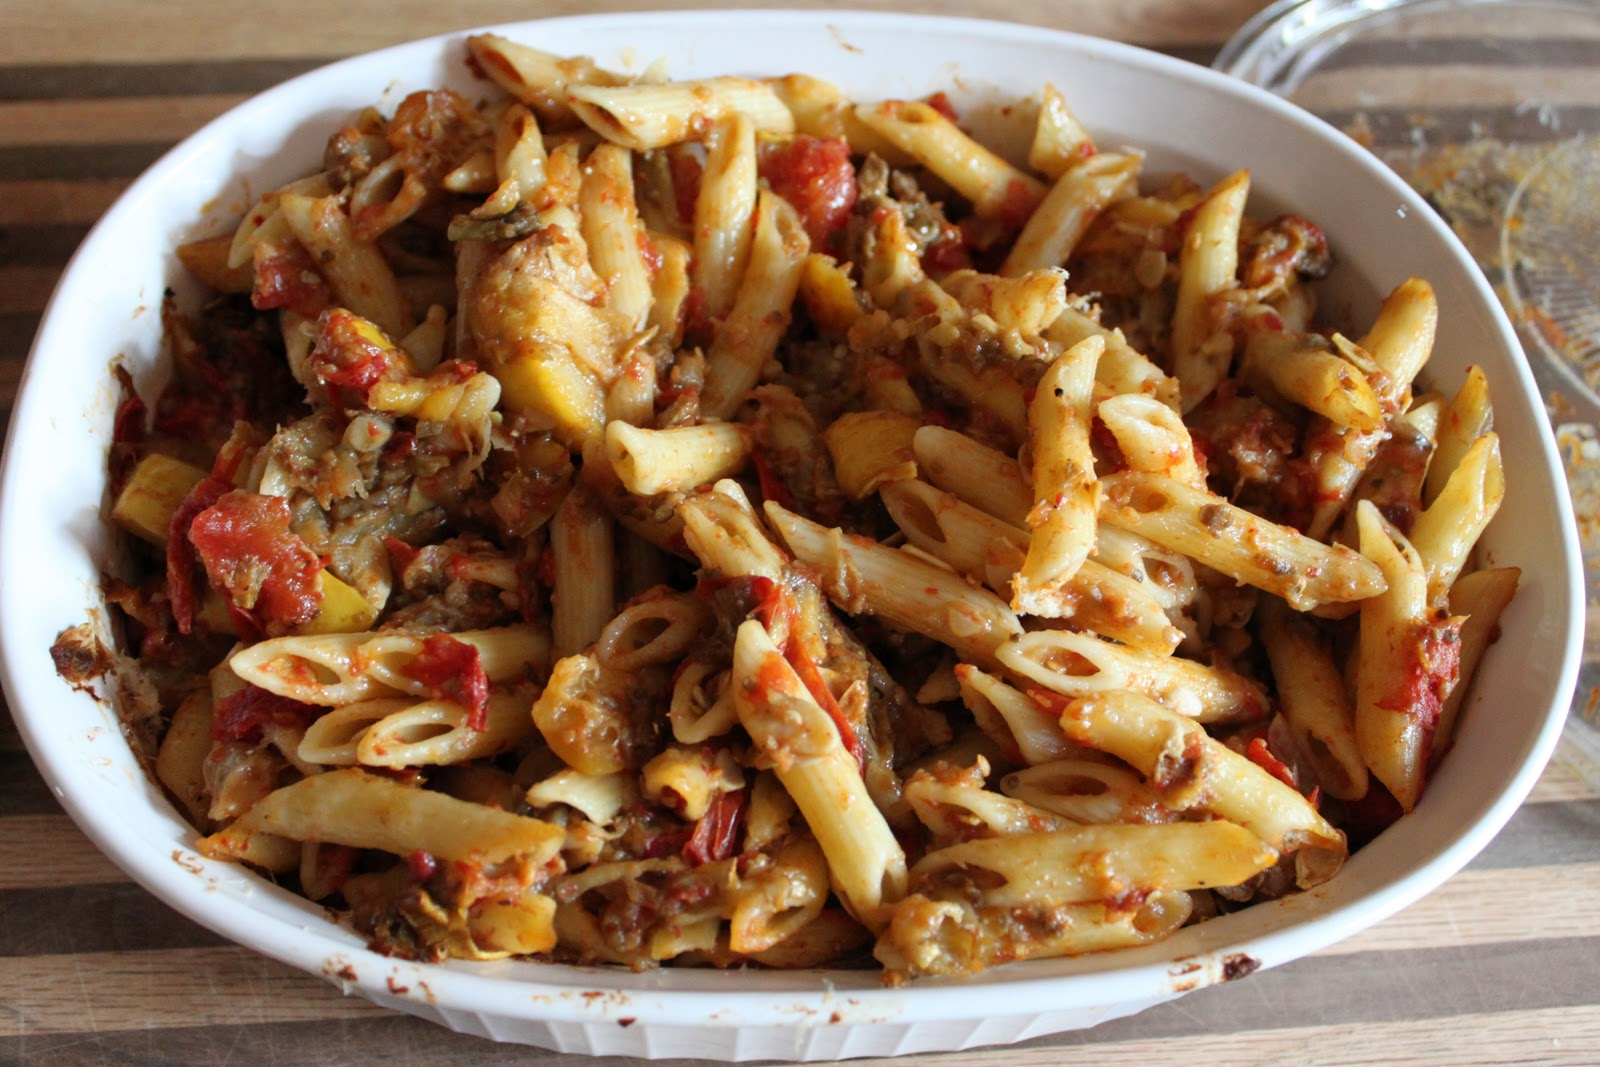 ... baked pasta in eggplant crust pasta baked w eggplant with eggplant and